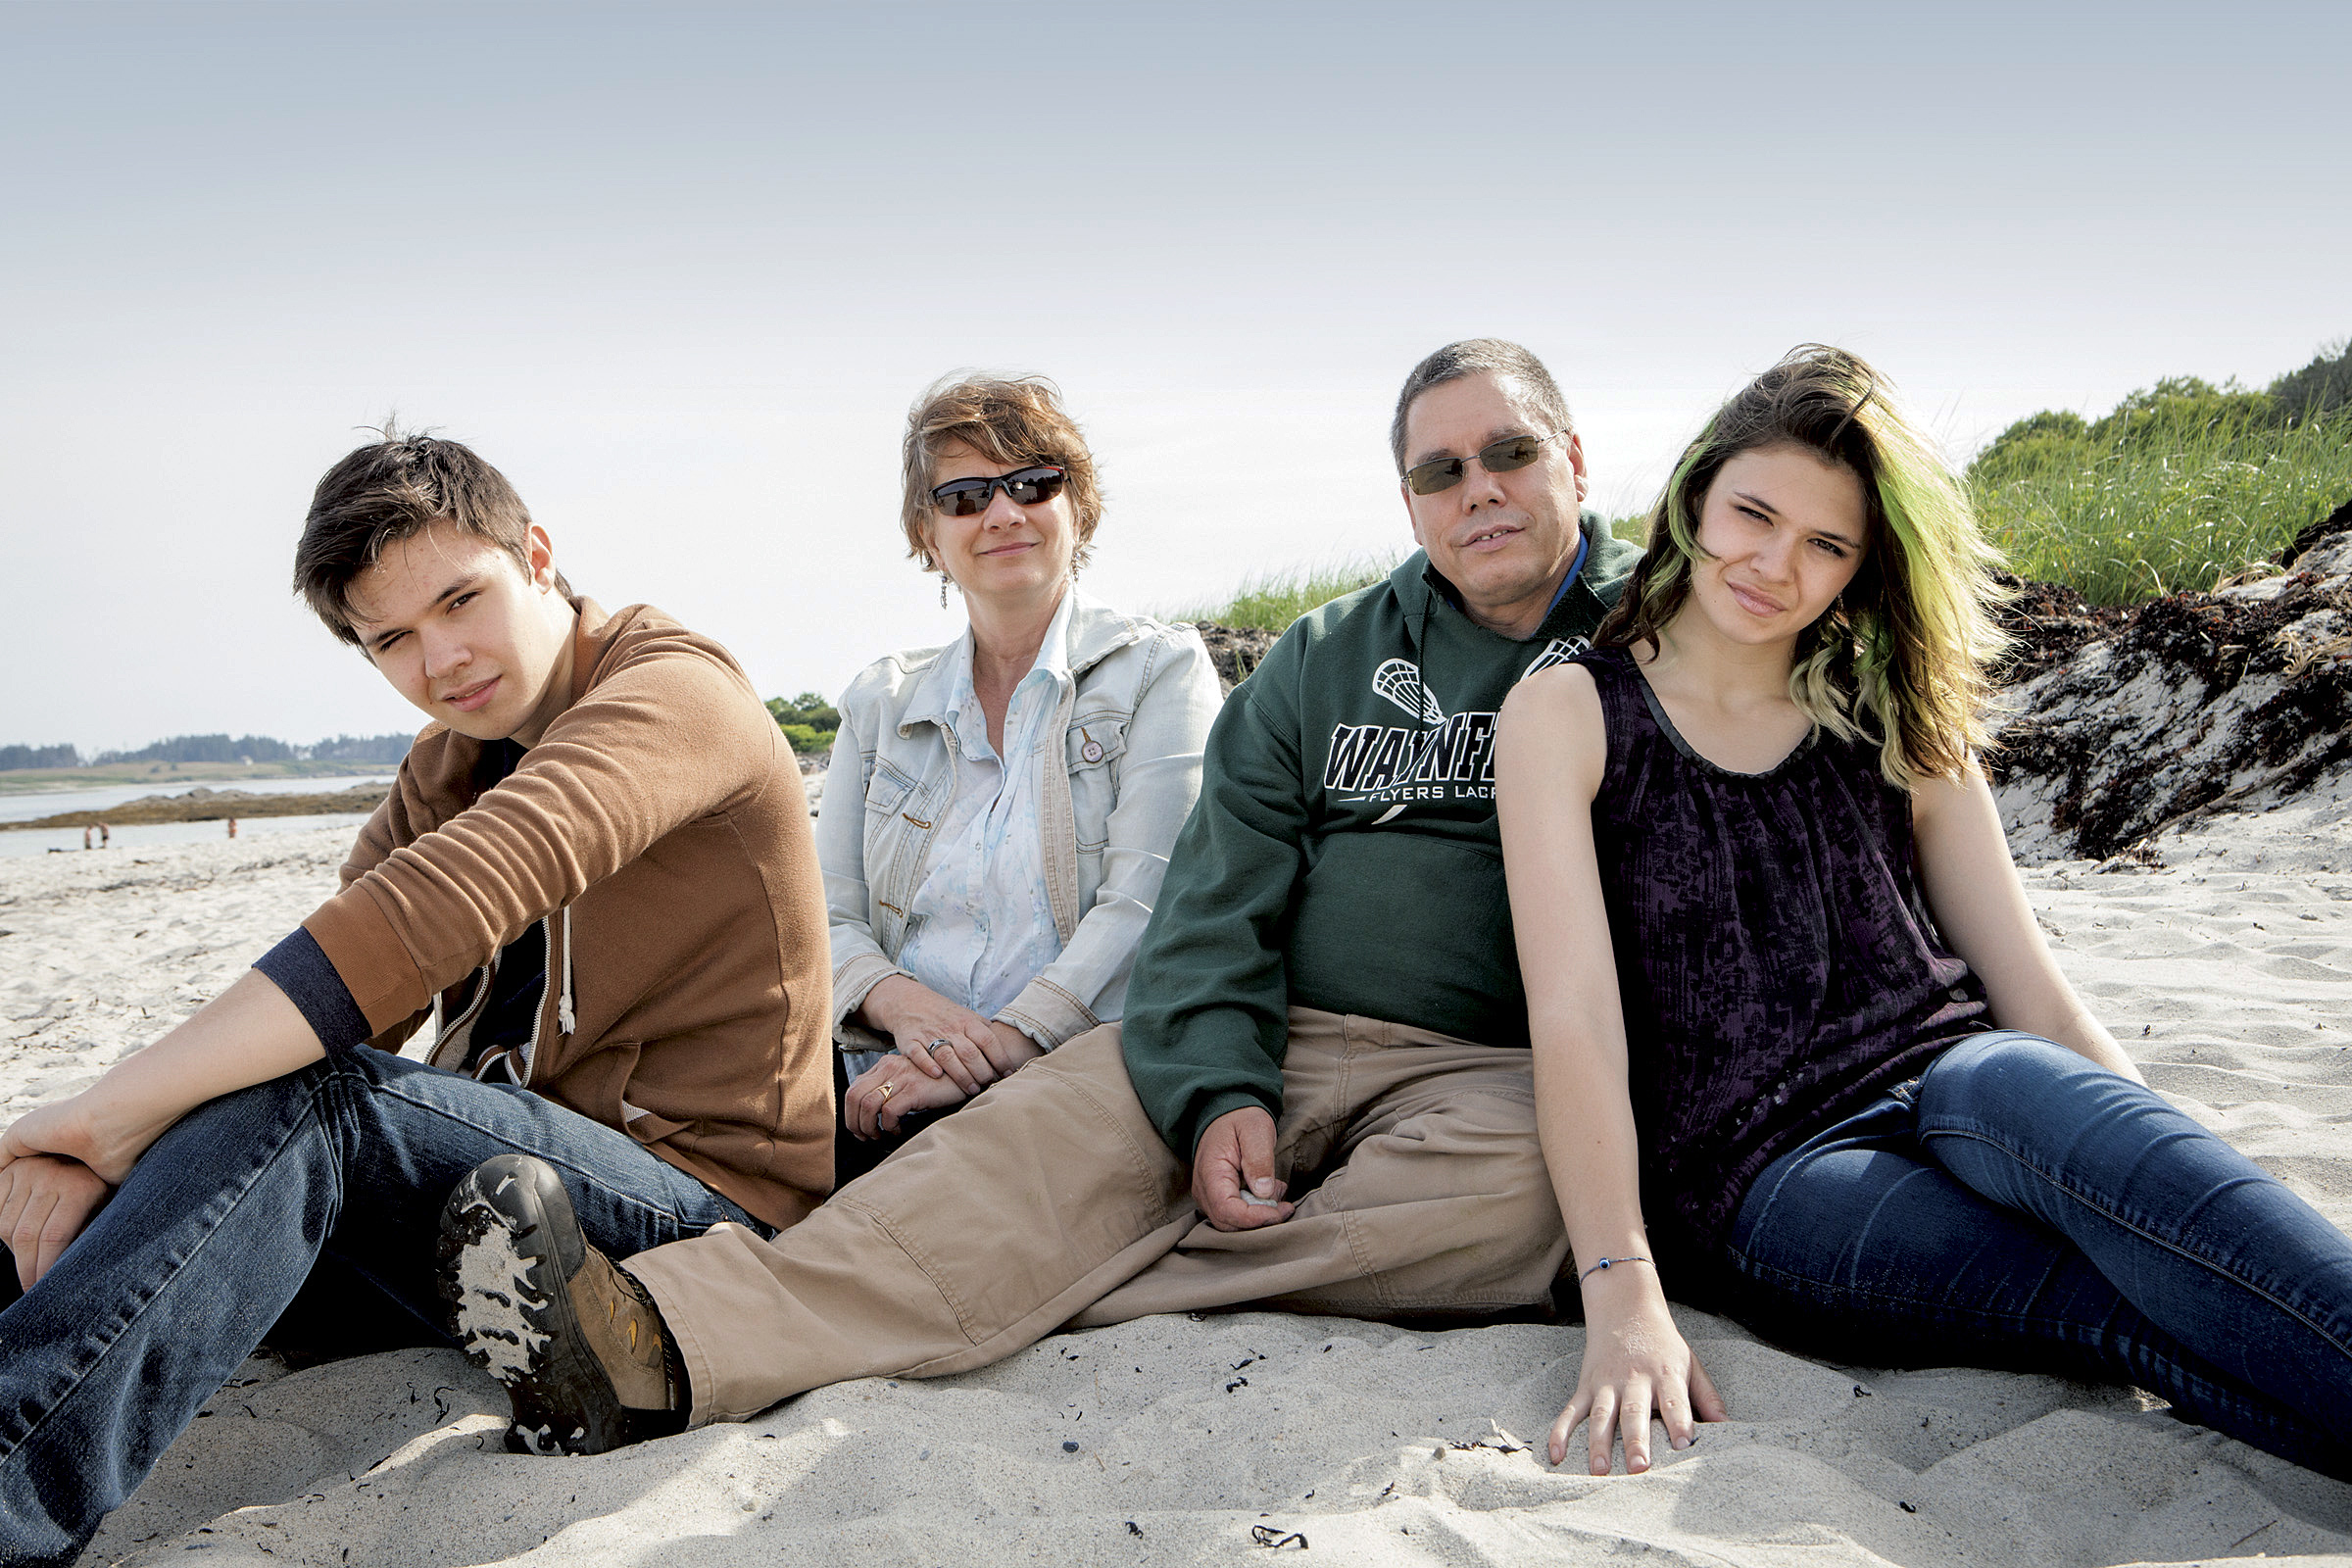 In this summer 2015 photo released by Random House, twins Jonas, left, and Nicole Maines, right, pose with their parents Kelly, second from left, and Wayne Maines, second from right at Crescent Beach State Park in Cape Elizabeth, Maine.